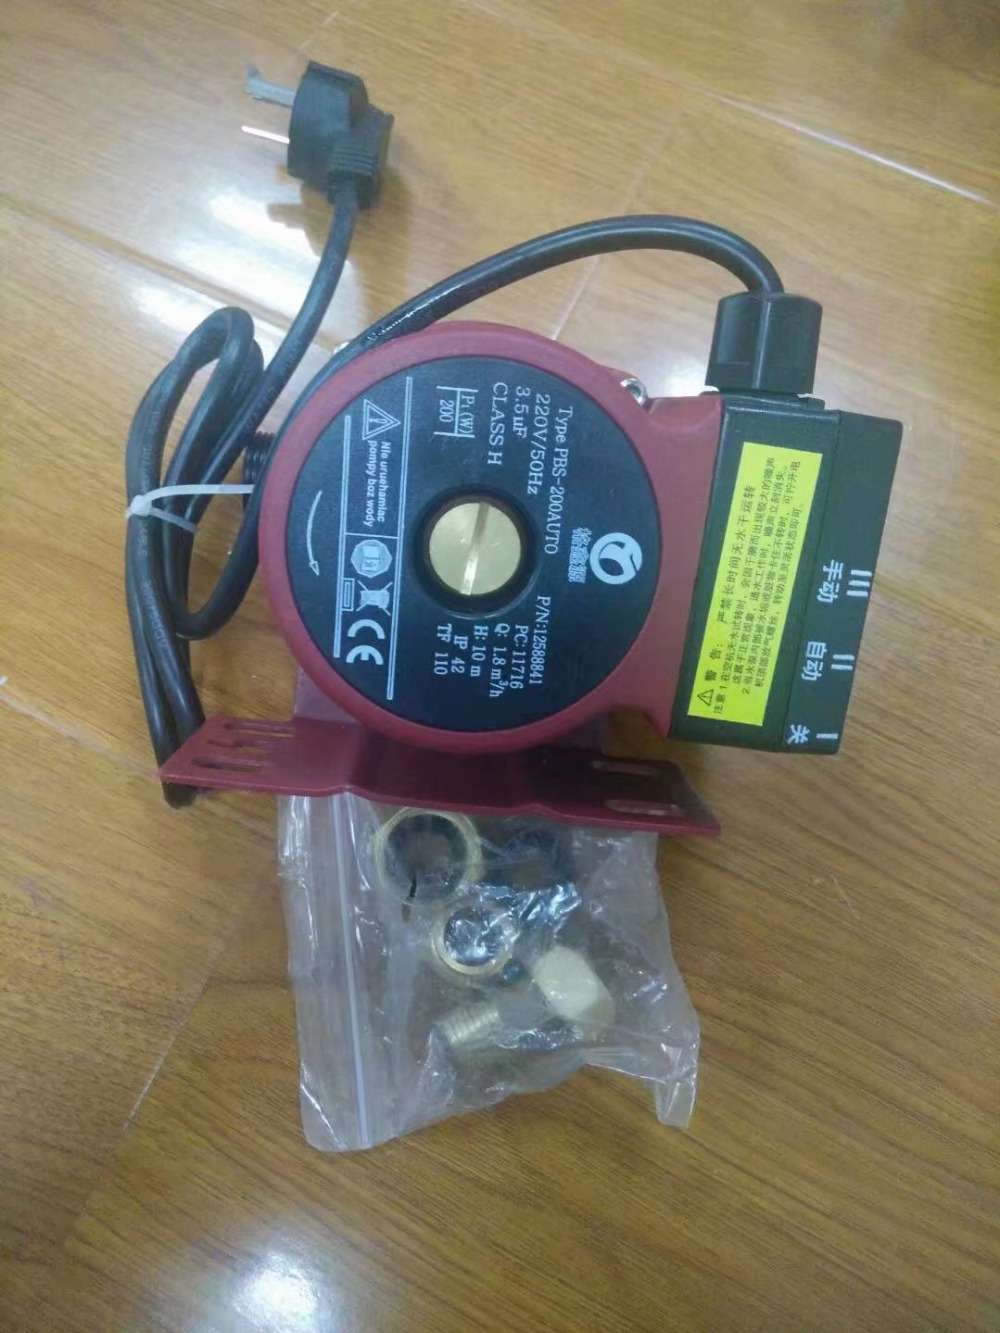 reorder rate up to 80% booster pump for hot water made in china household water pressure booster pump small watyer booster pump reorder rate up to 80